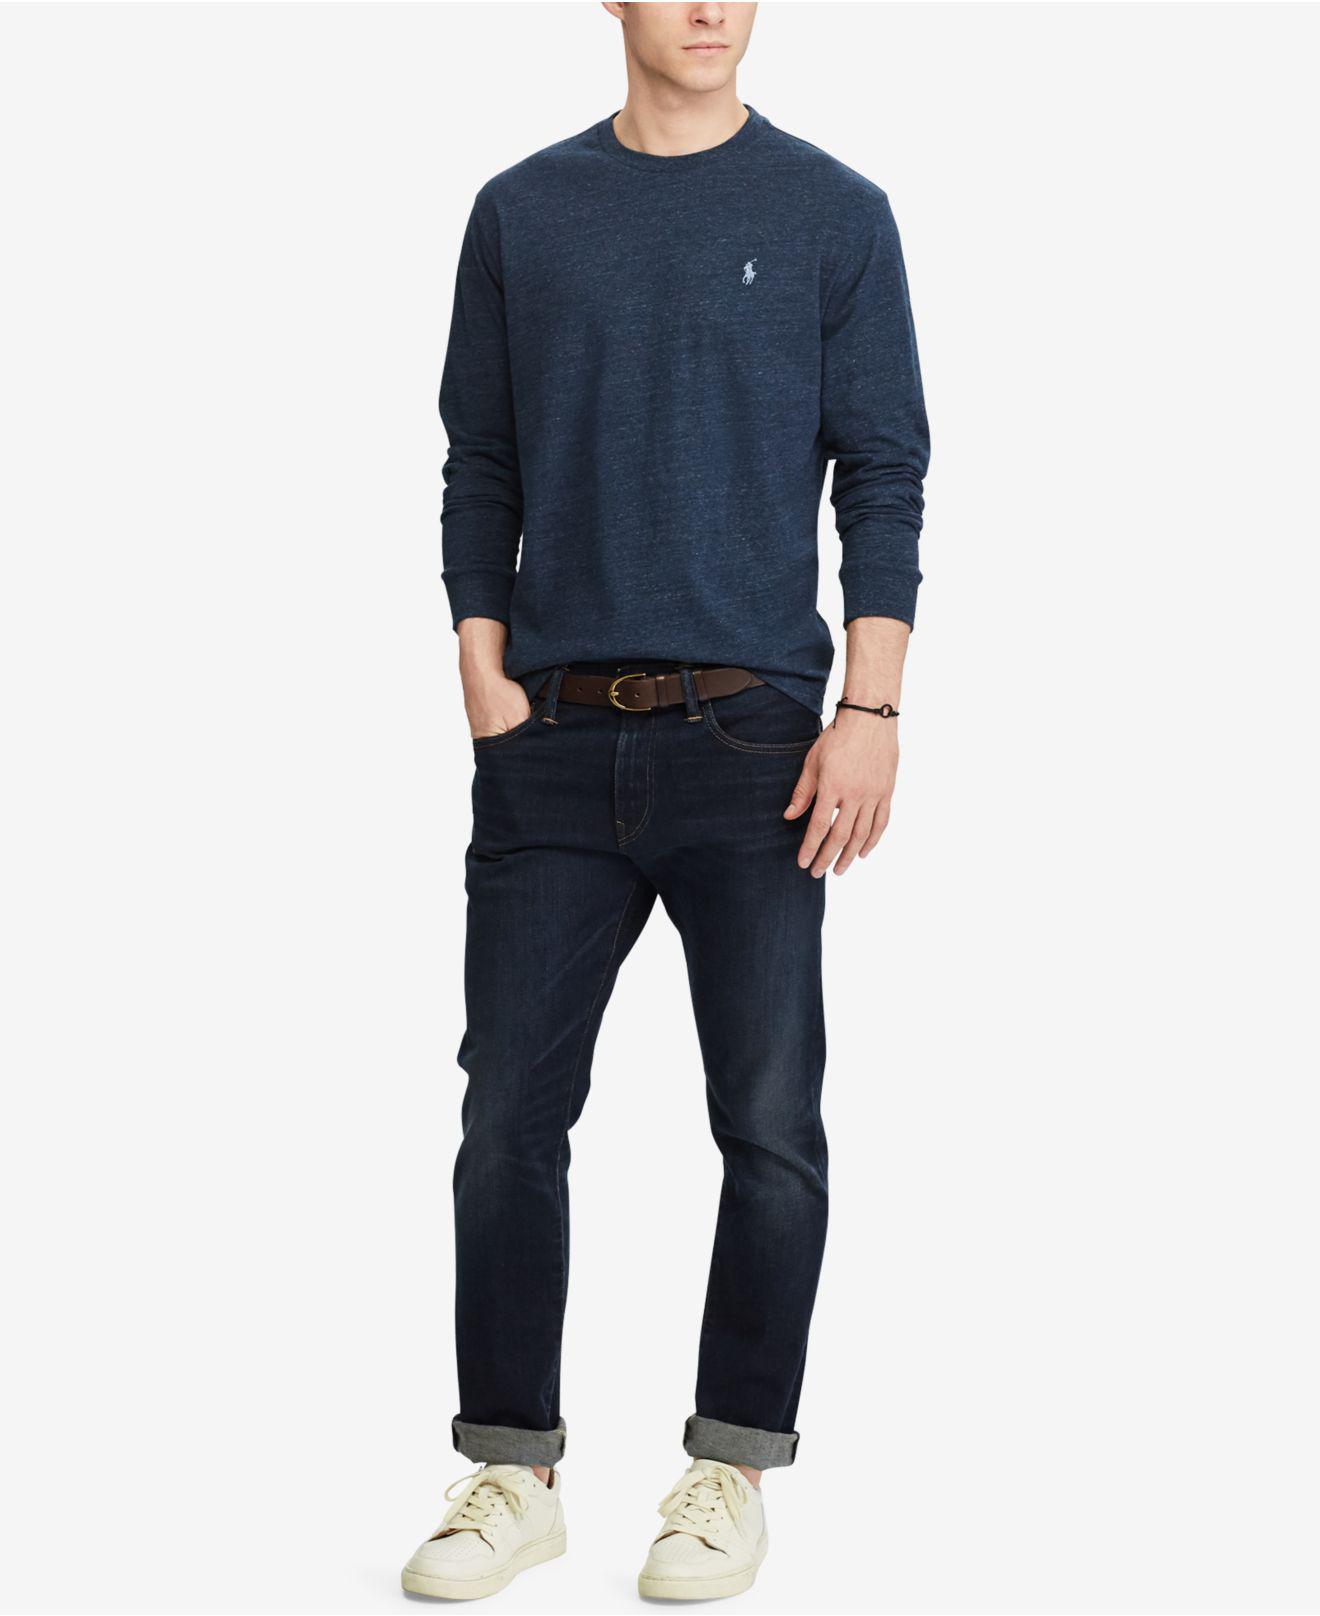 5df534bb8 Polo Ralph Lauren Men's Classic-fit Long-sleeve T-shirt in Blue for ...